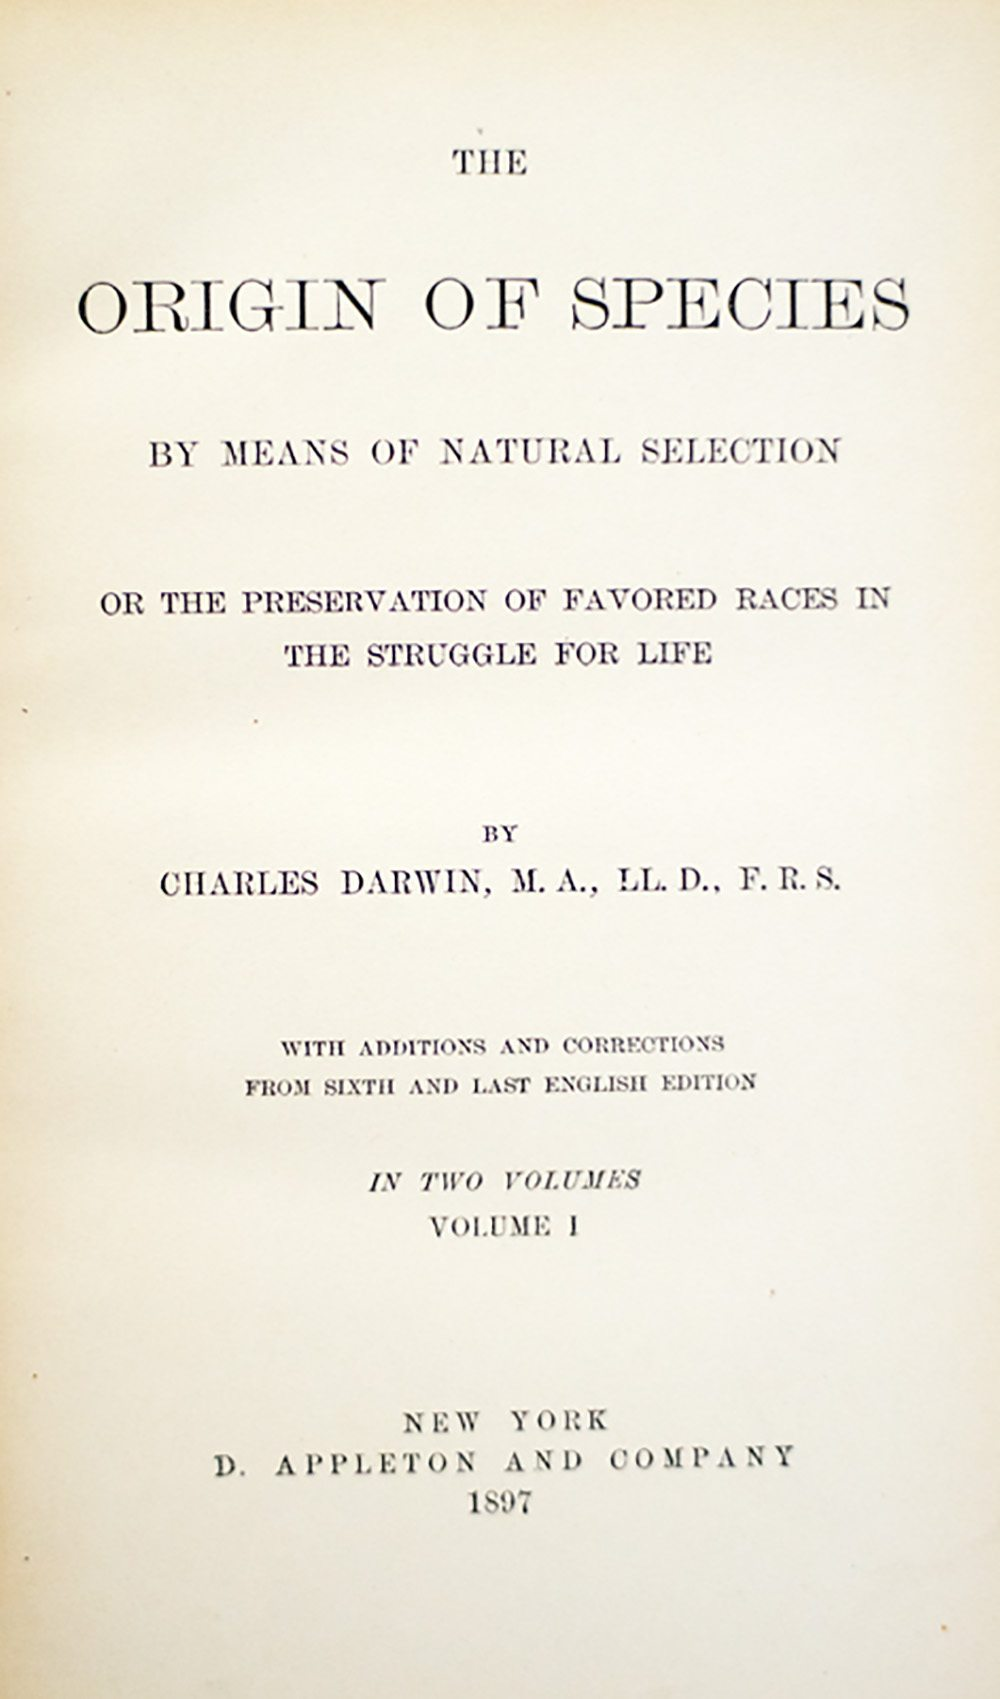 The Works of Charles Darwin.